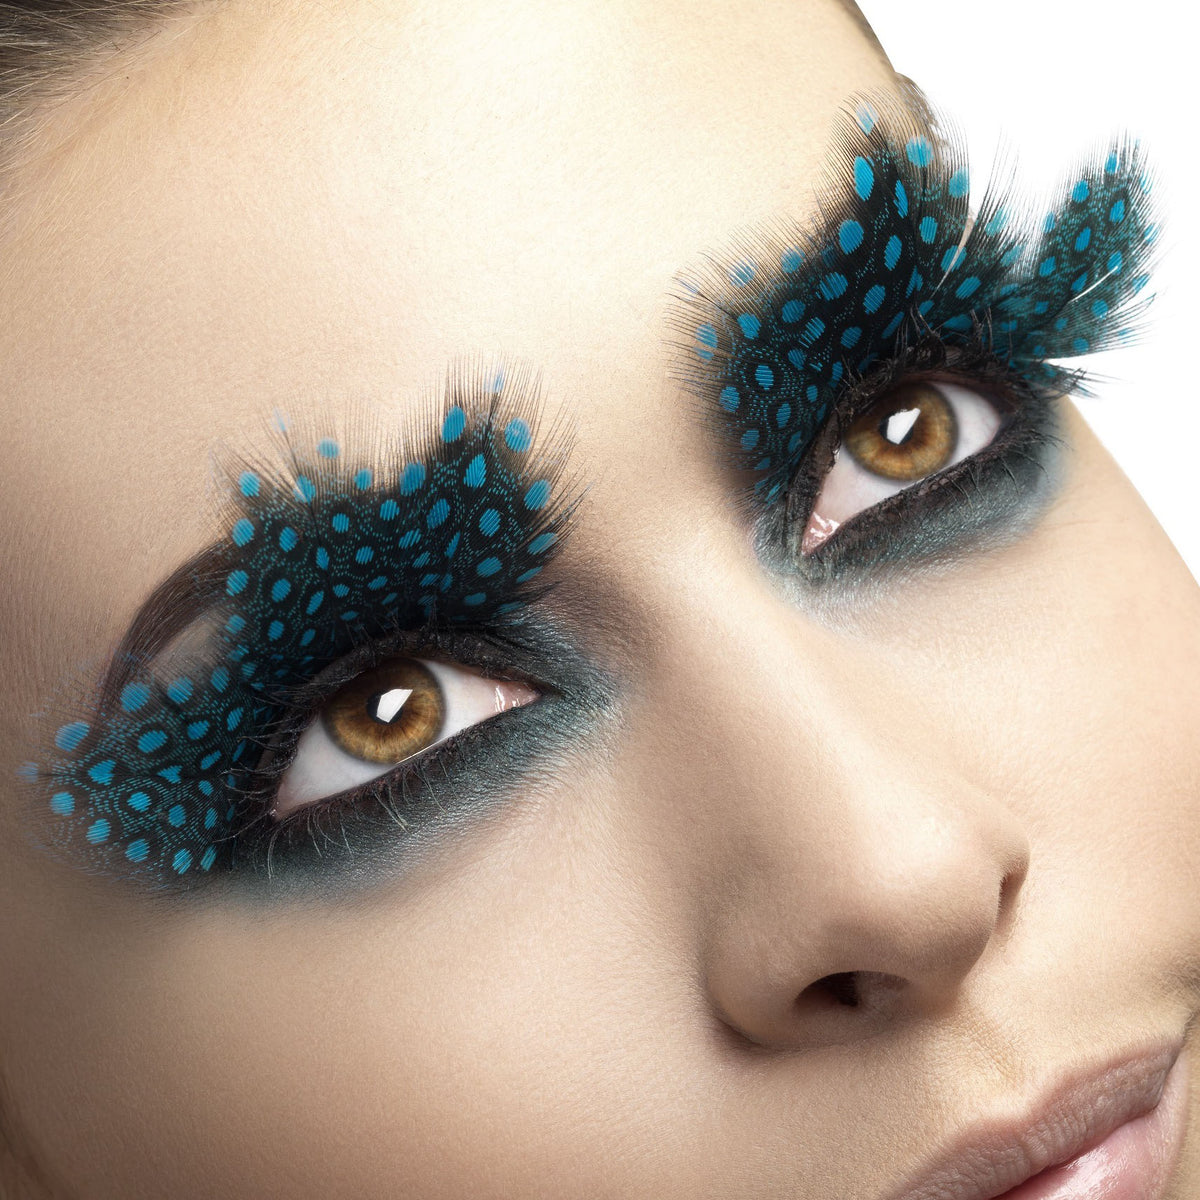 Fever False Eyelashes - Large Aqua Dot Feathers - Red Carpet FX - Professional Makeup